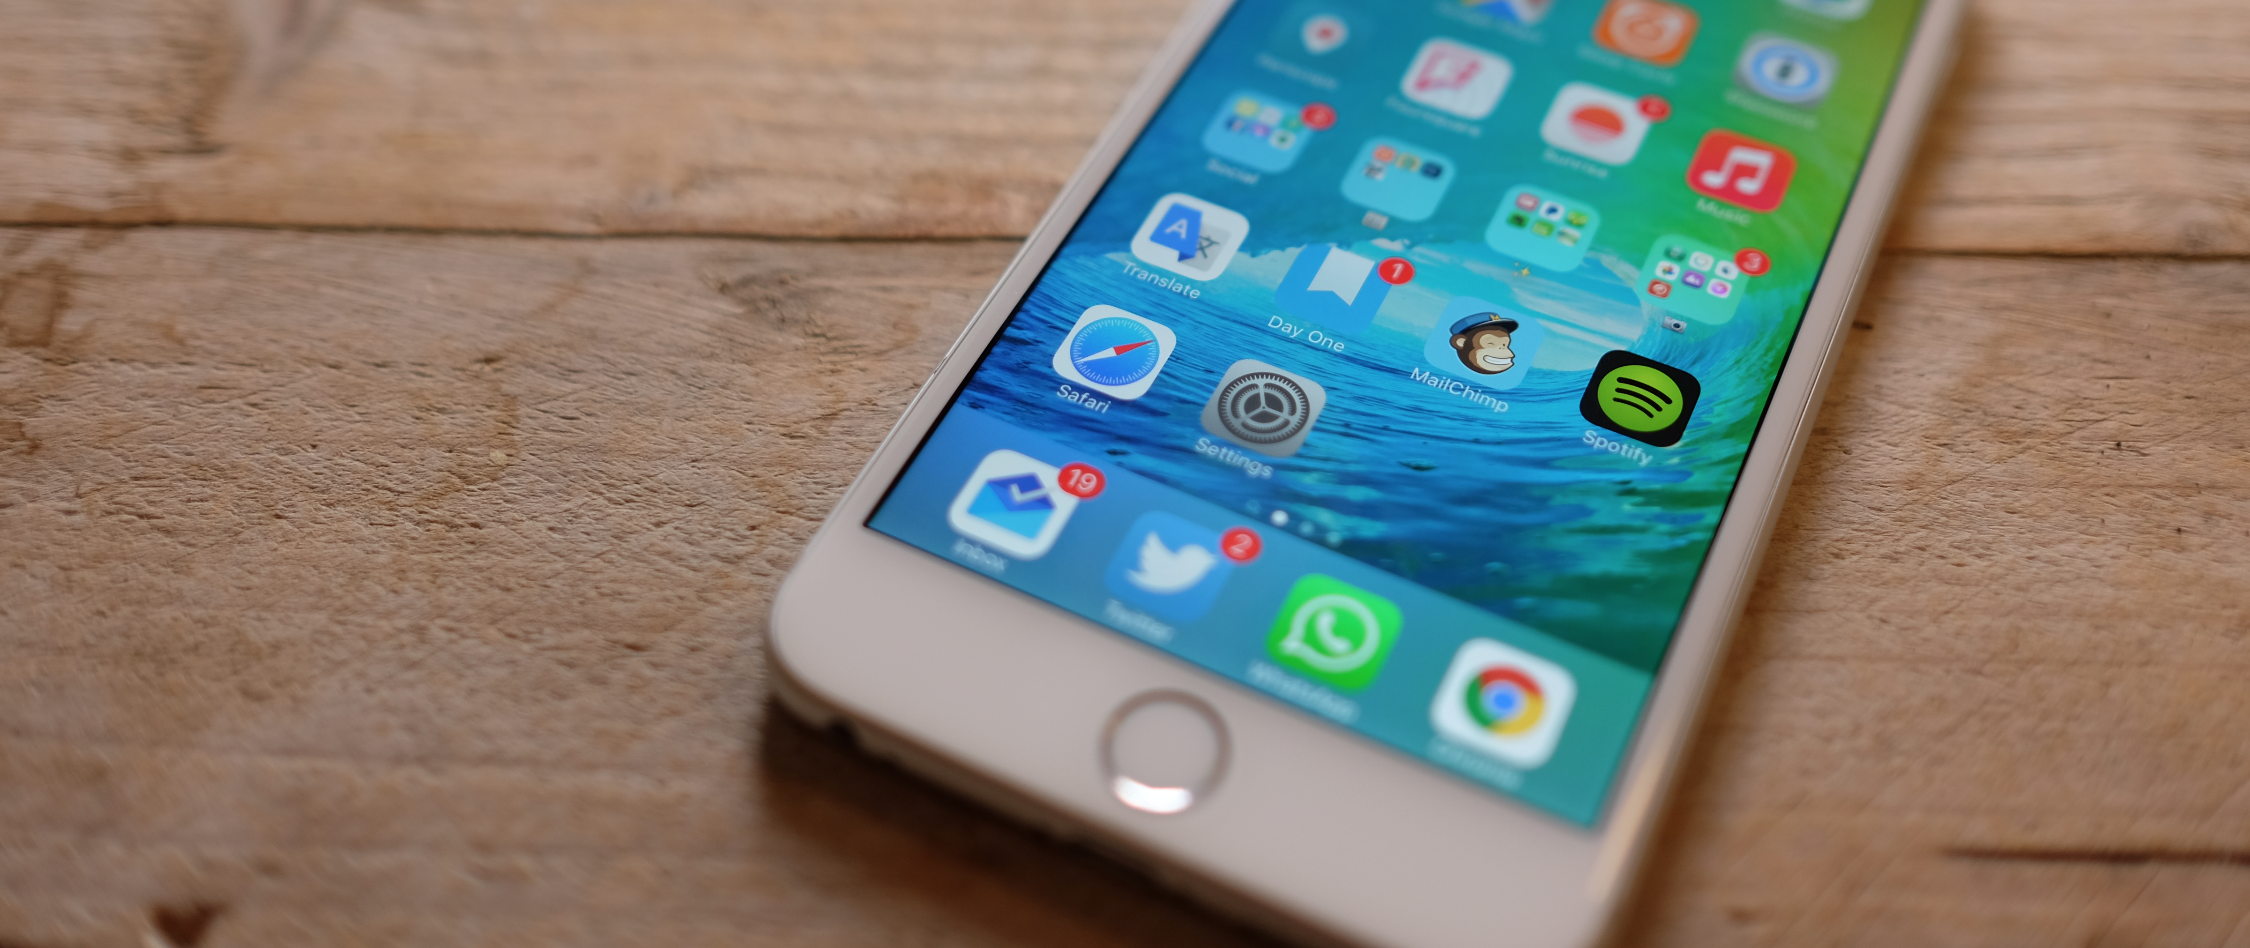 iOS 9 content blocker will transform the mobile Web